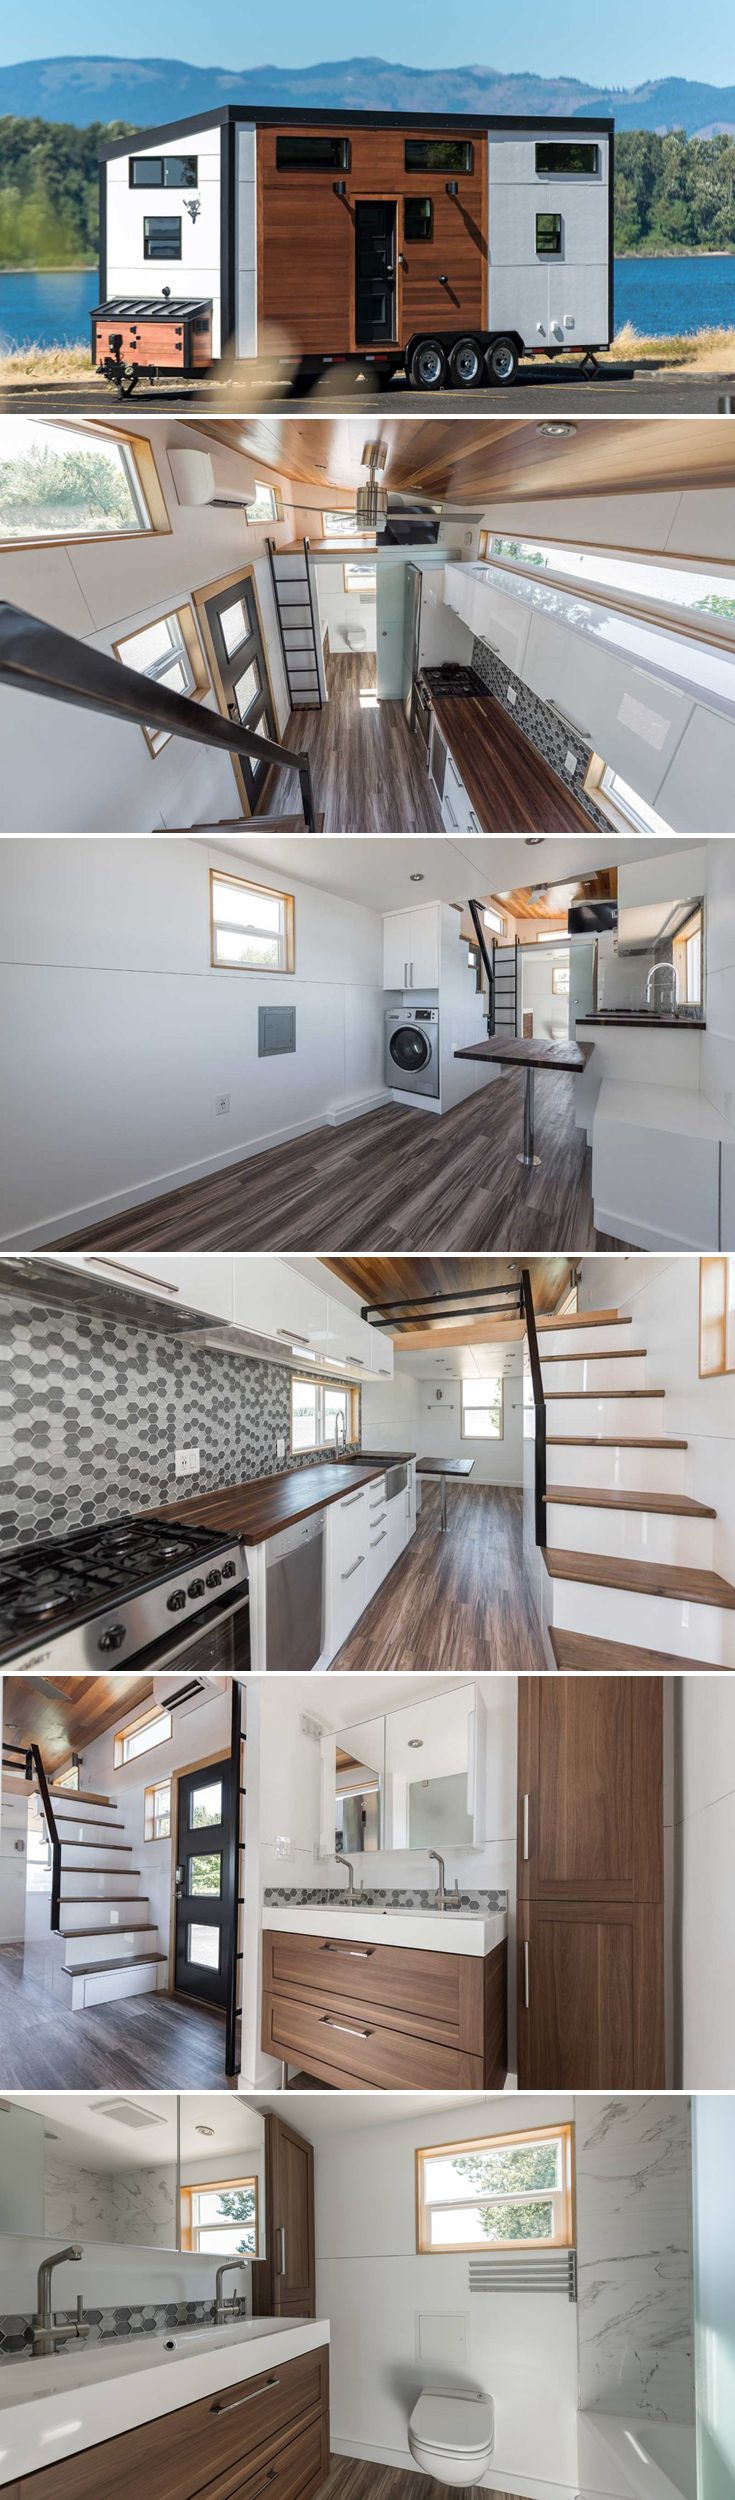 The Catalina is the first model home from Tiny Innovations, located in Gresham, Oregon. The modern 317-square-foot tiny house has a bright, airy interior.